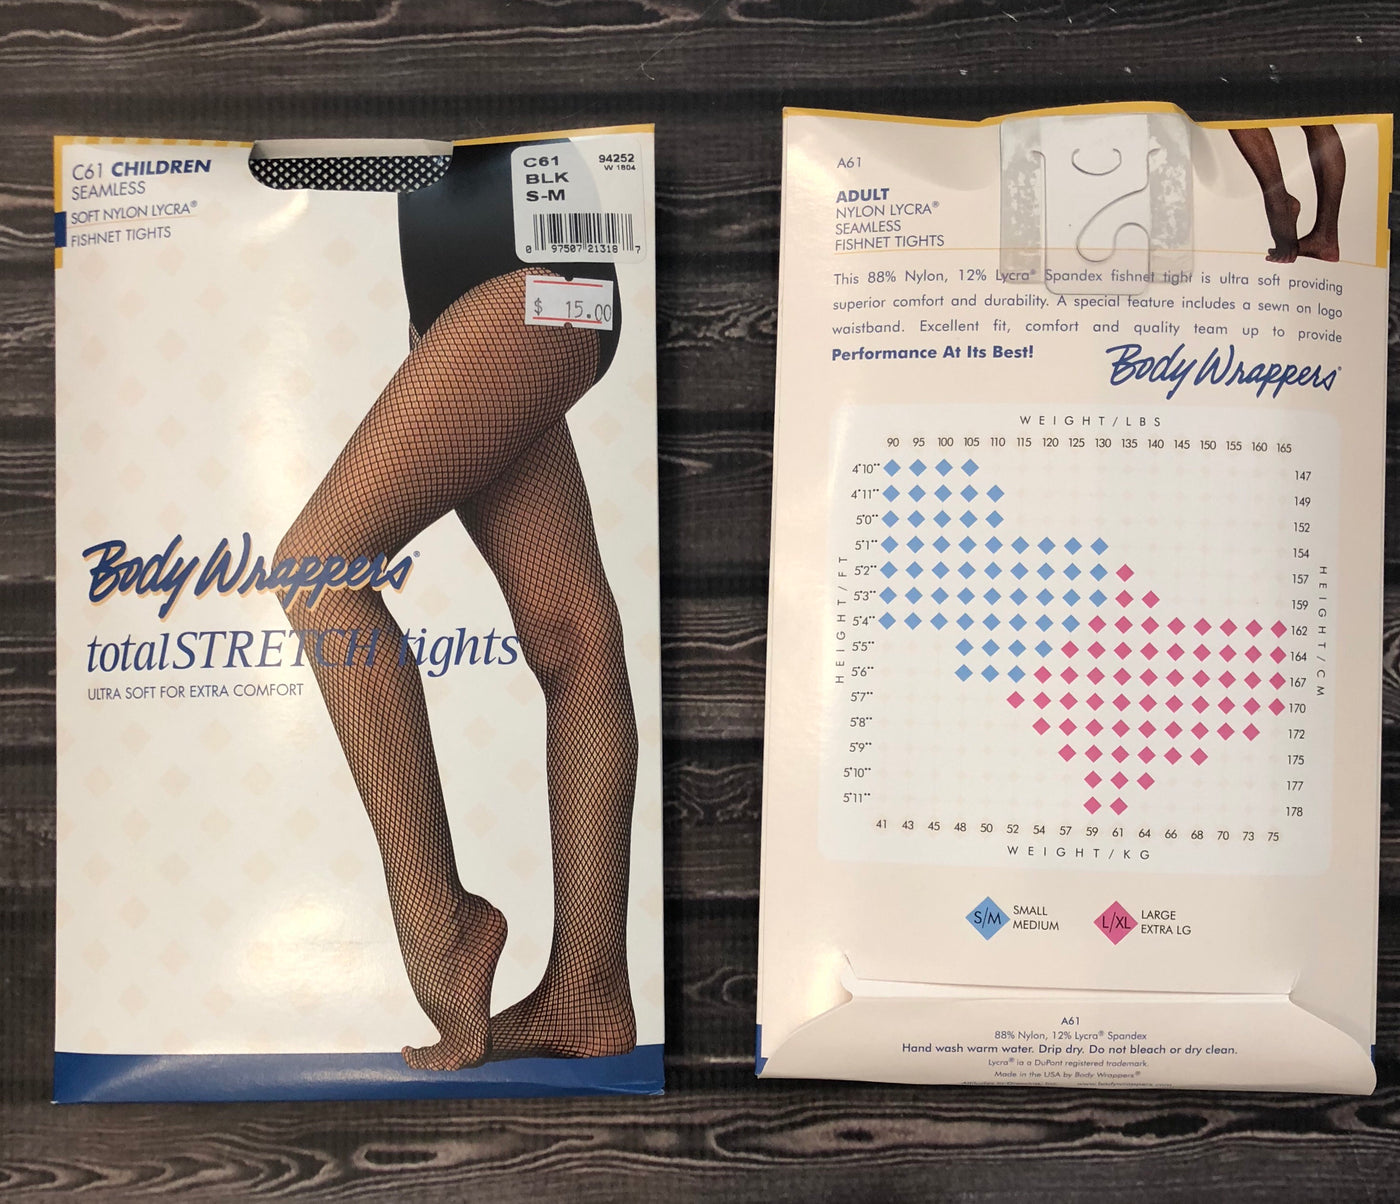 69d75ca65de79 Body Wrappers totalSTRETCH® Seamless Fishnet Tights - Child/Adult (C61/A61)  - Black